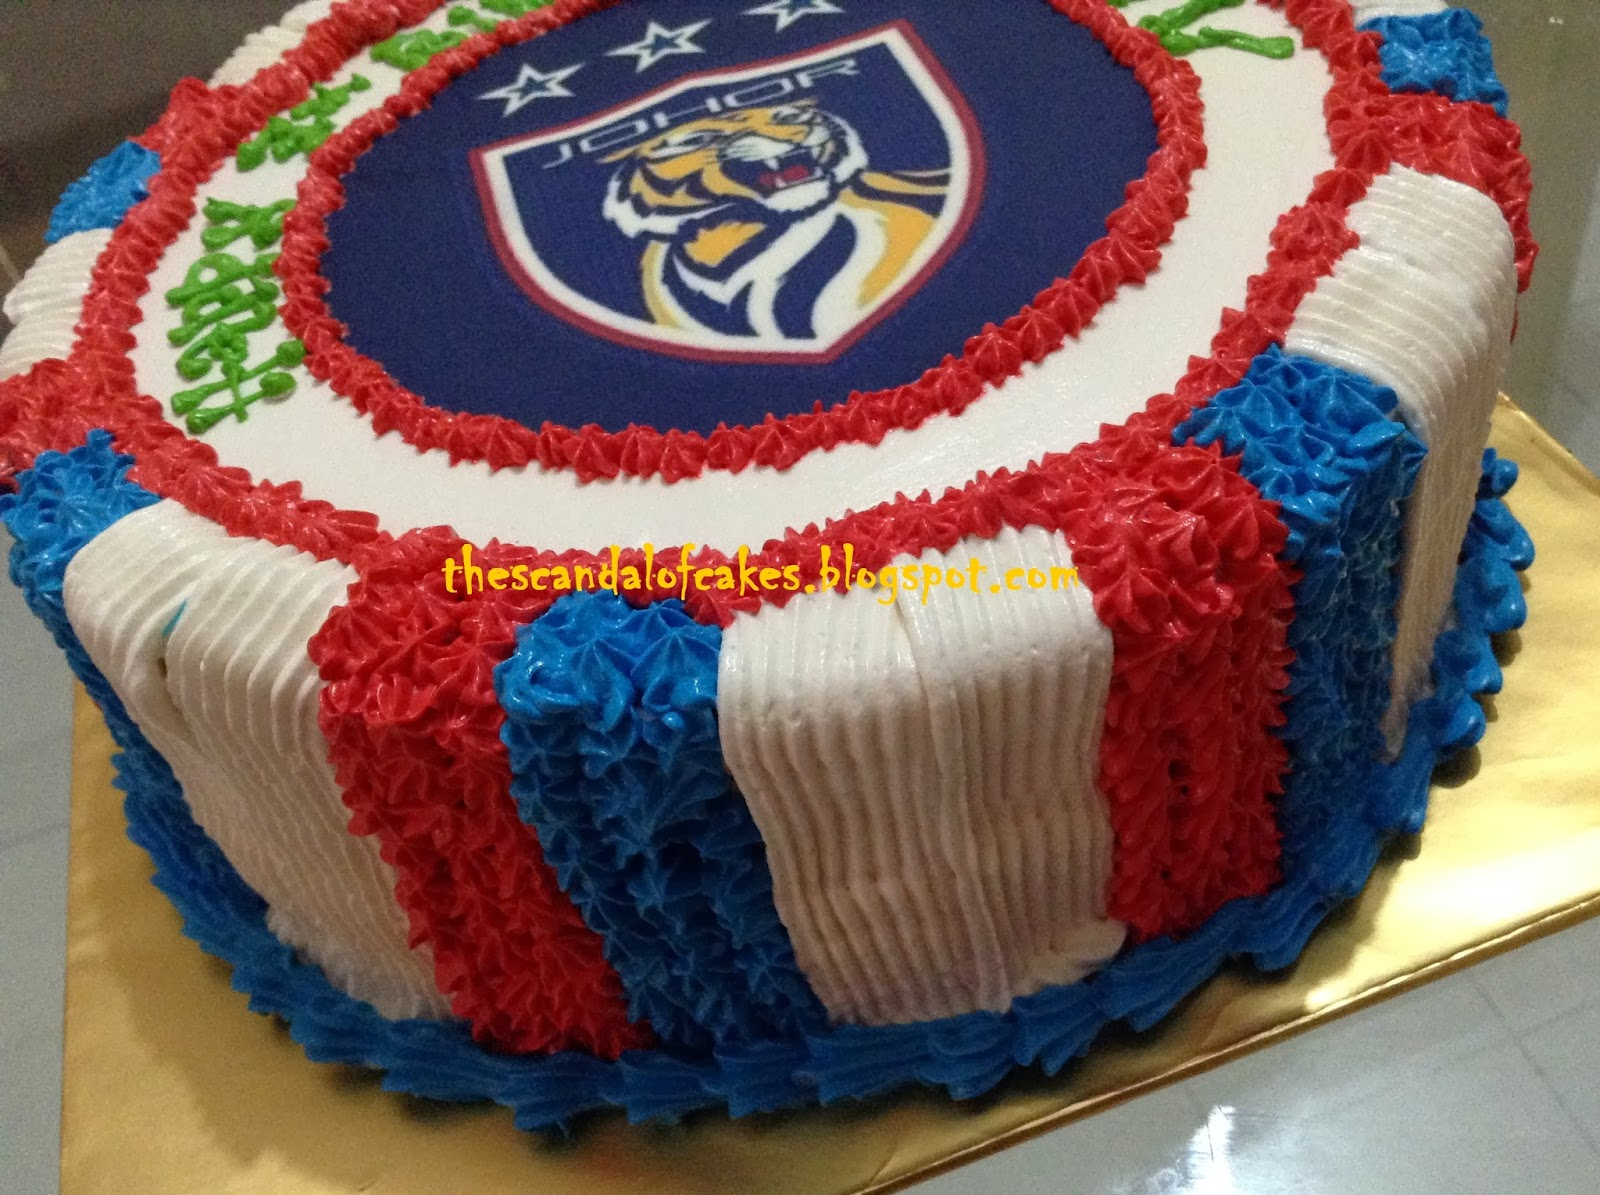 Edible Cake Images Football : JDT Football Cake - Edible Image The Scandal of Cakes